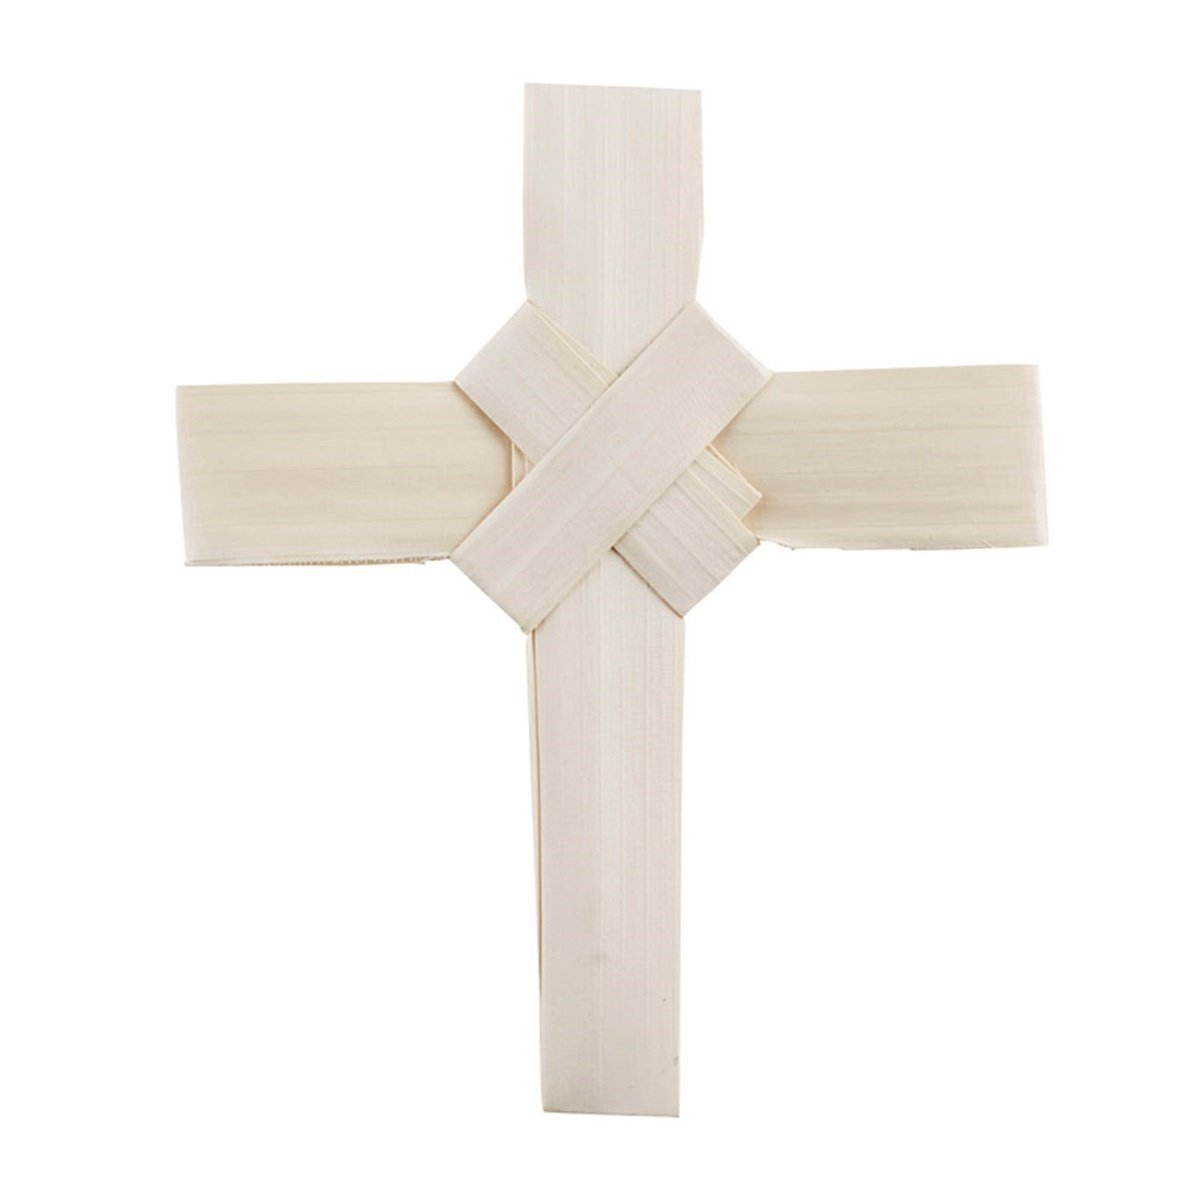 Palm Leaf Cross with Crossover Center Design, 4 Inch, Pack of 100